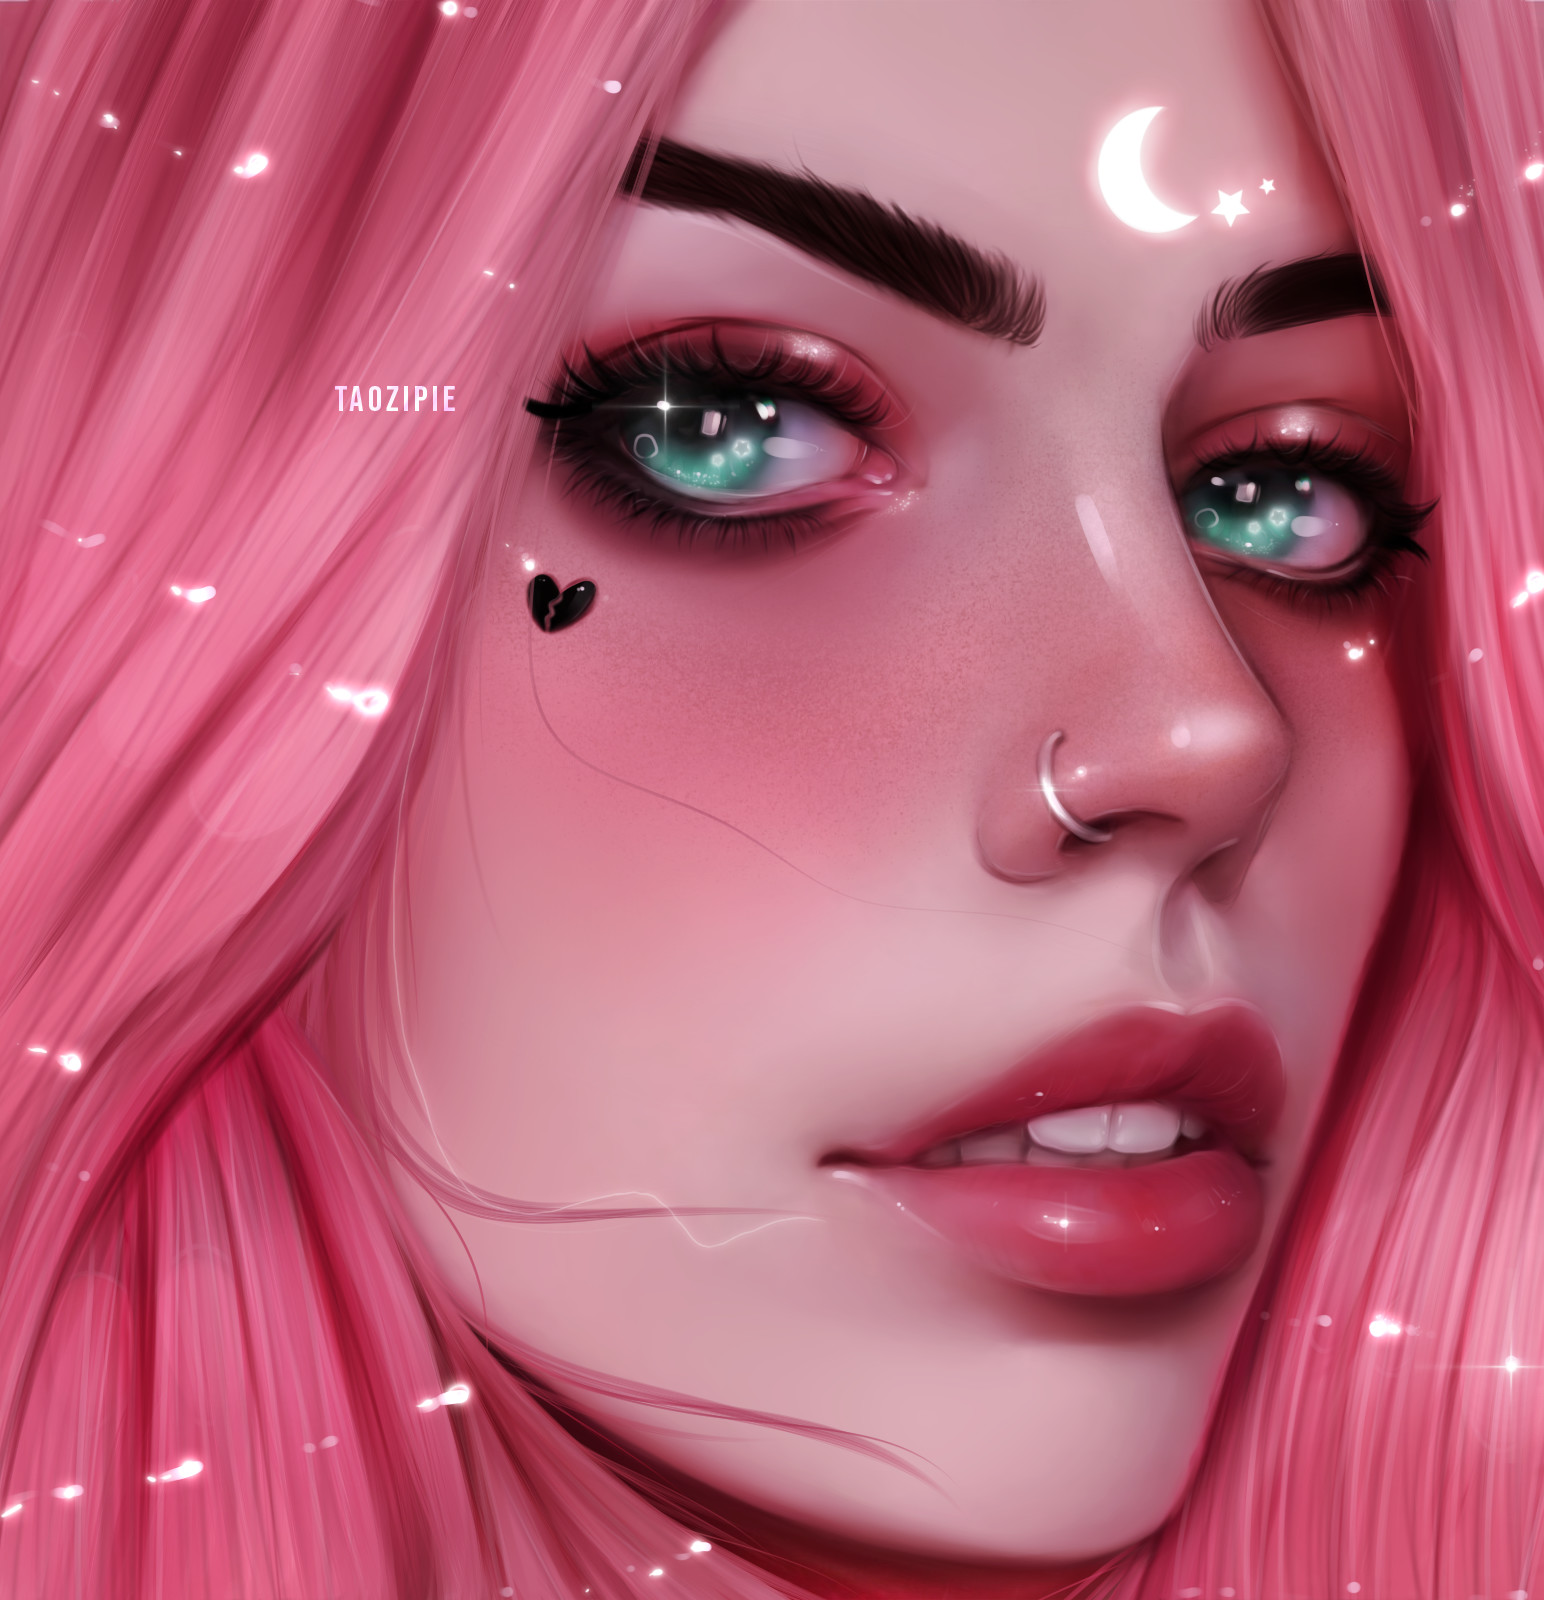 Digital Art by Olivia Derivas(taozipie)